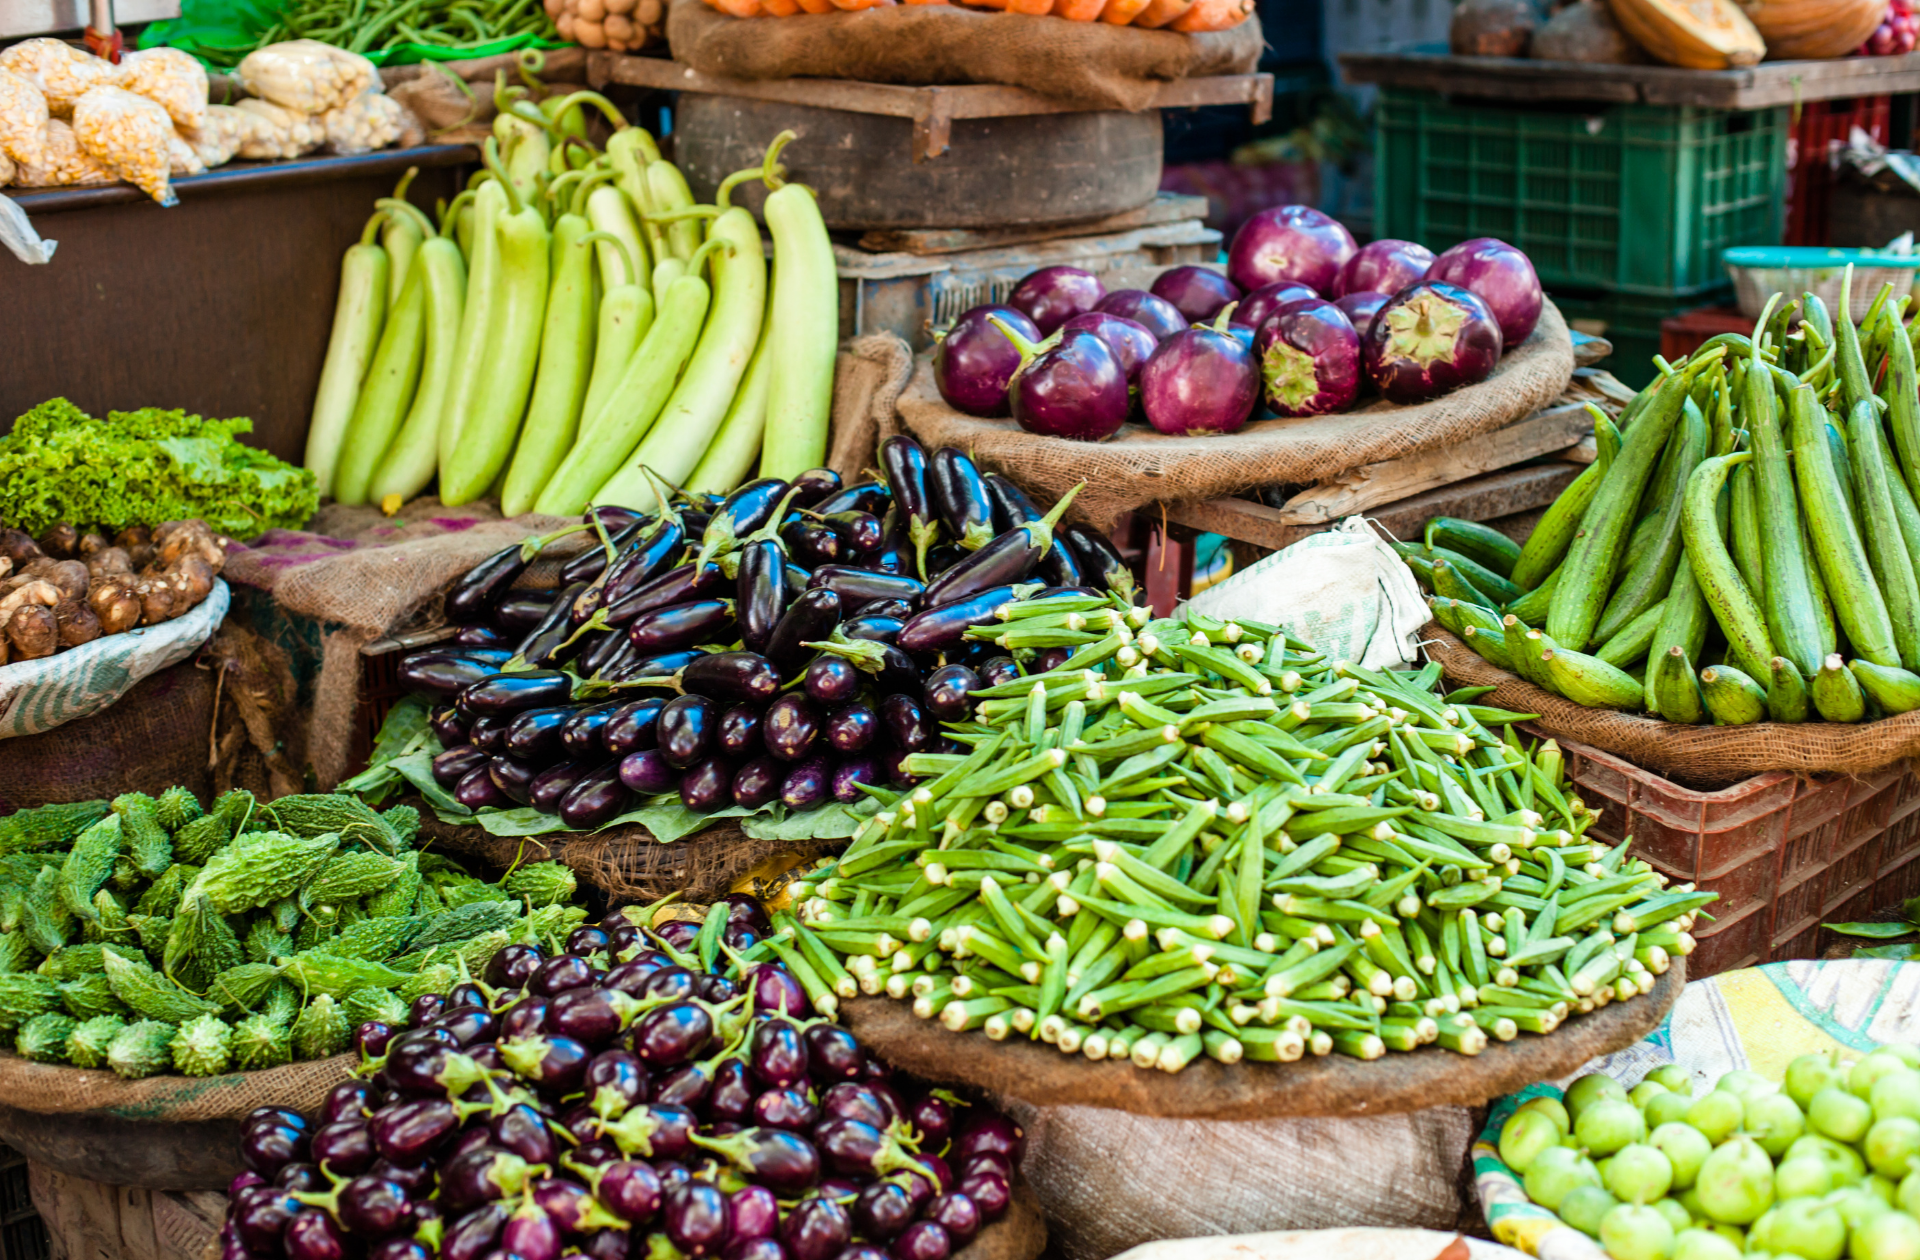 Photo of a vegetable shop in India selling Okra, Egg Plants etc.